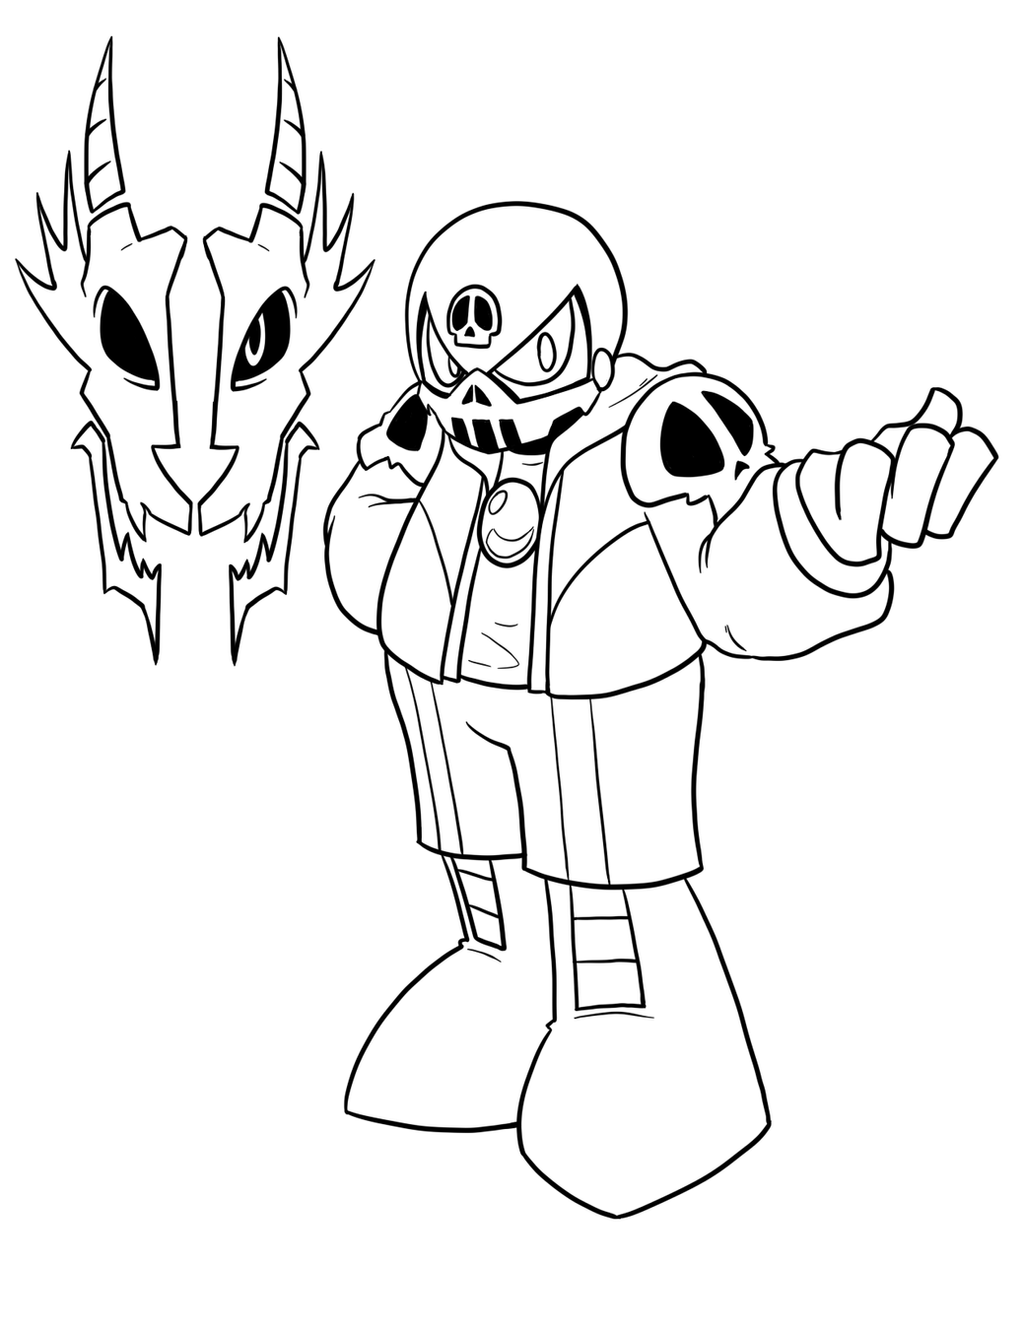 Skull man sans by inkwell pony on deviantart for Sans coloring page